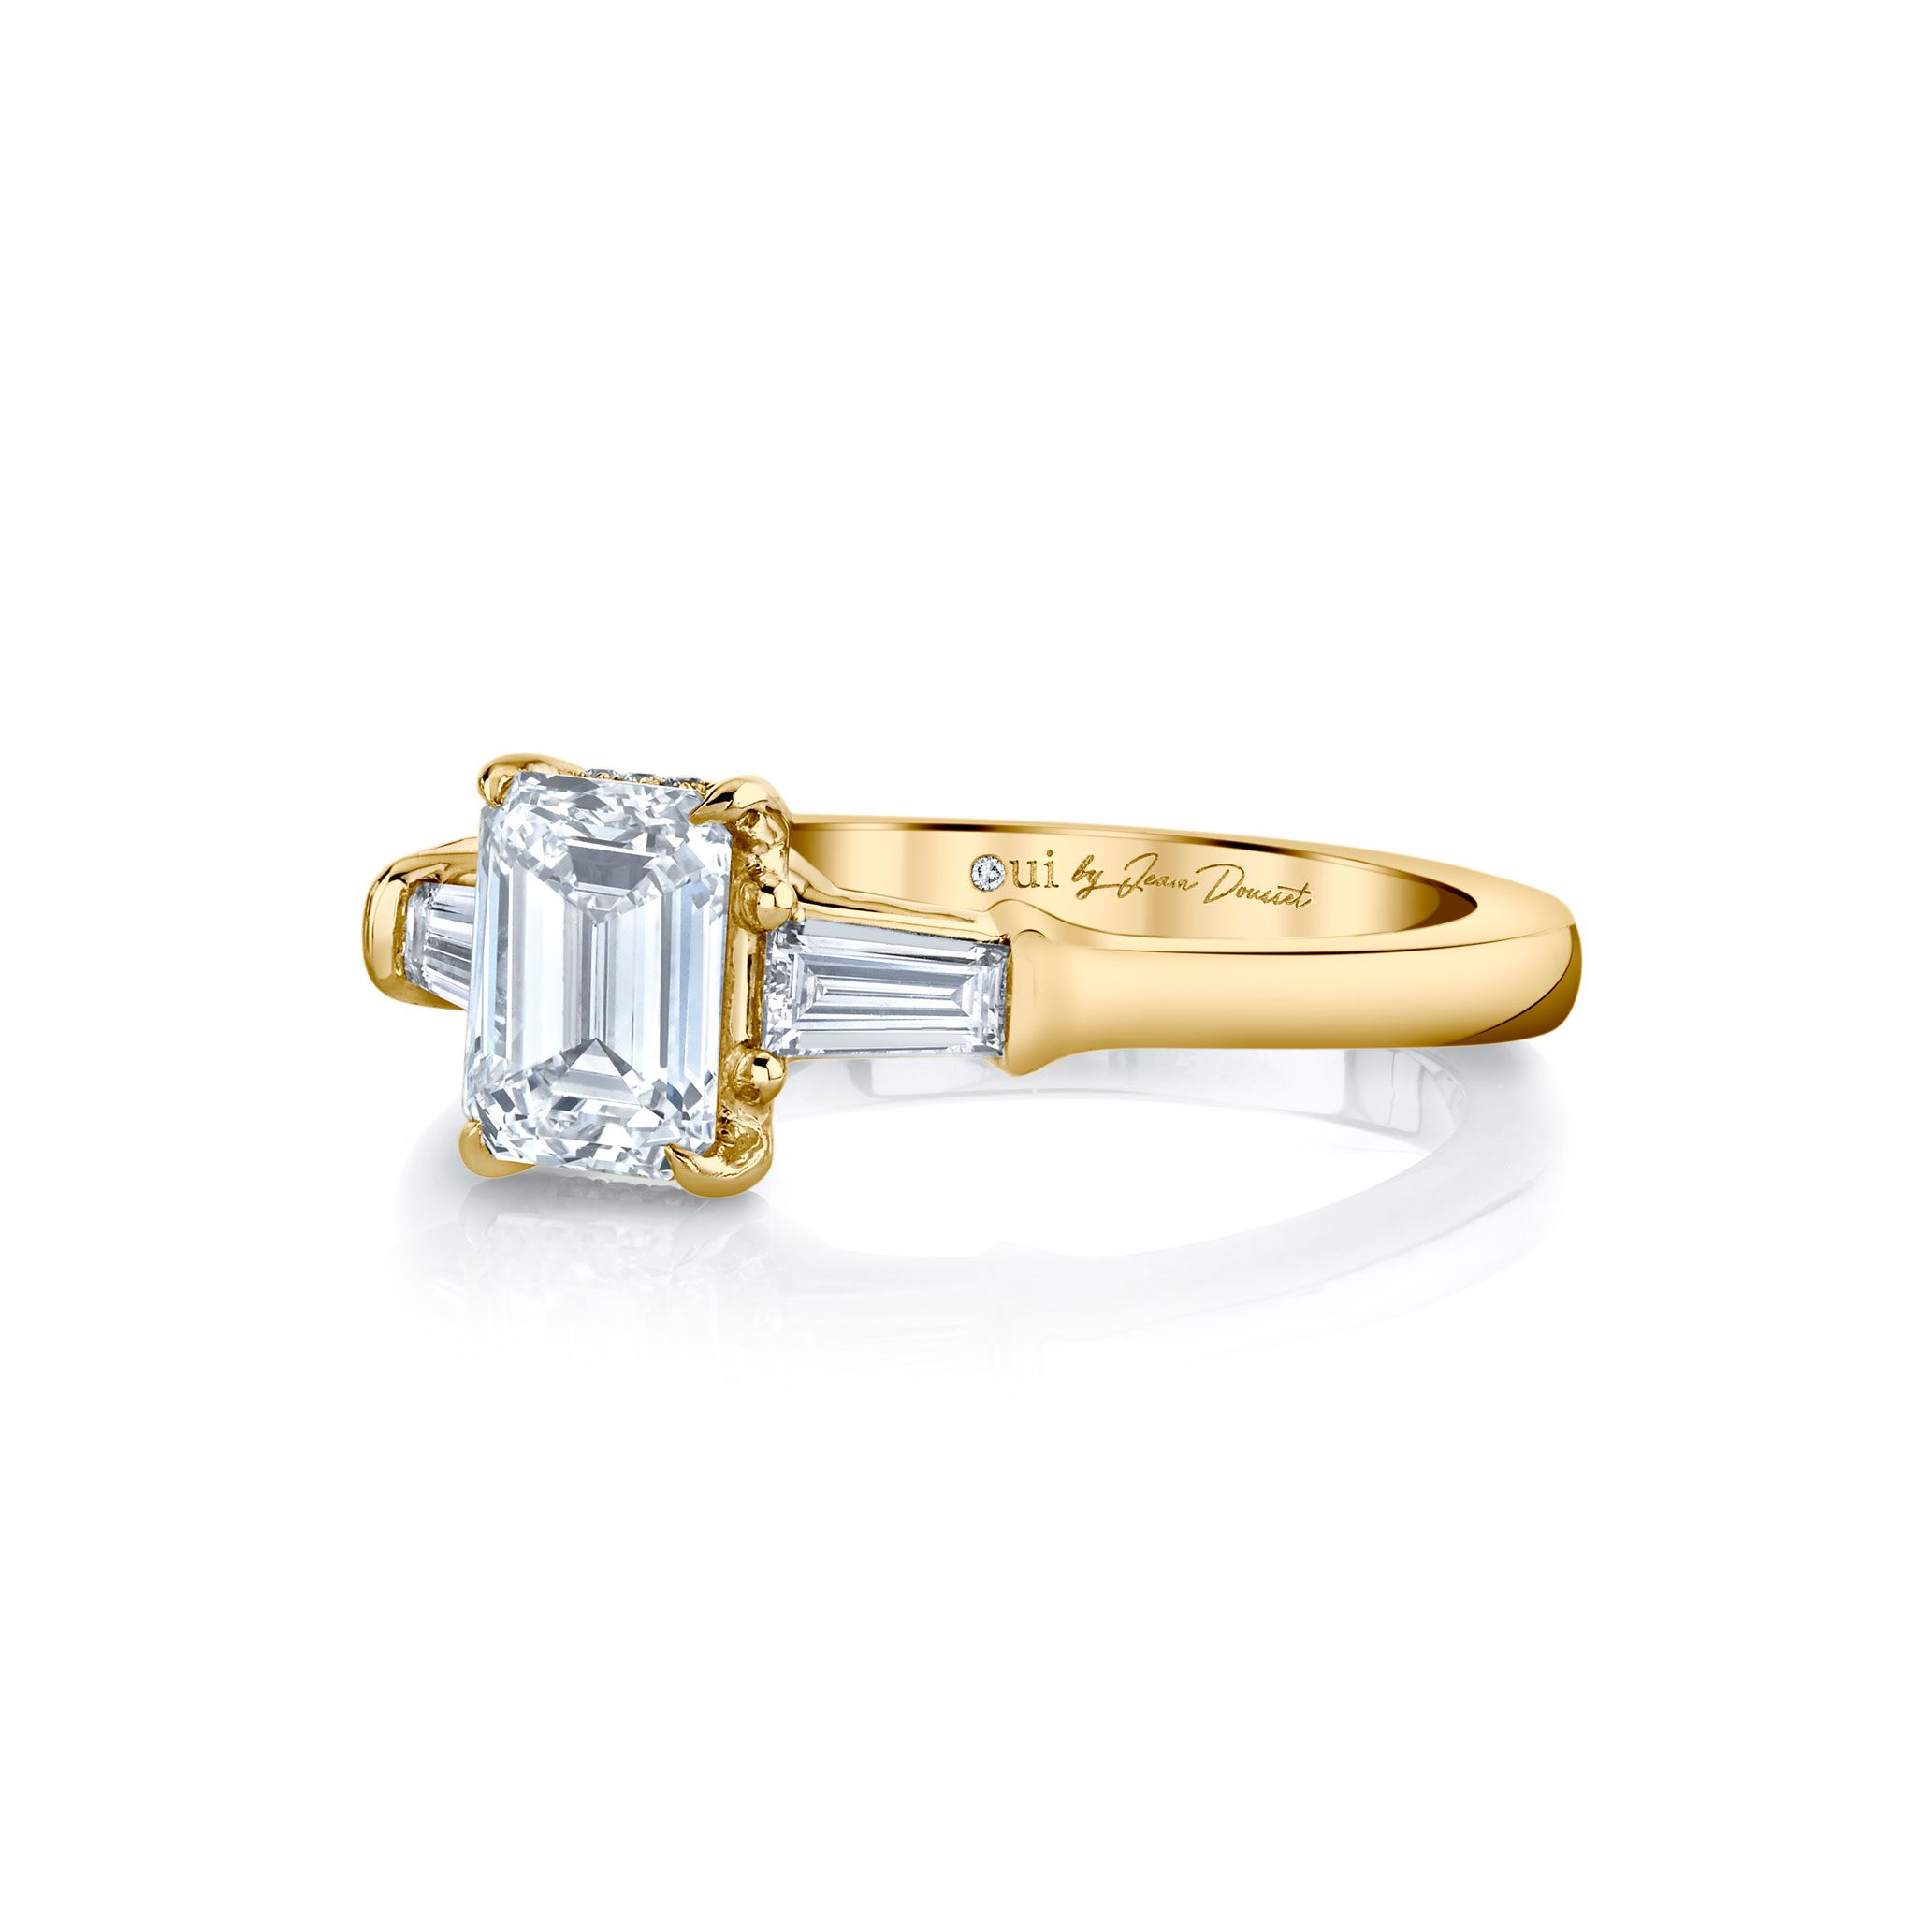 Claire Emerald Three Stone Engagement Ring with tapered baguette diamond side stones in 18k Yellow Gold Side View by Oui by Jean Dousset